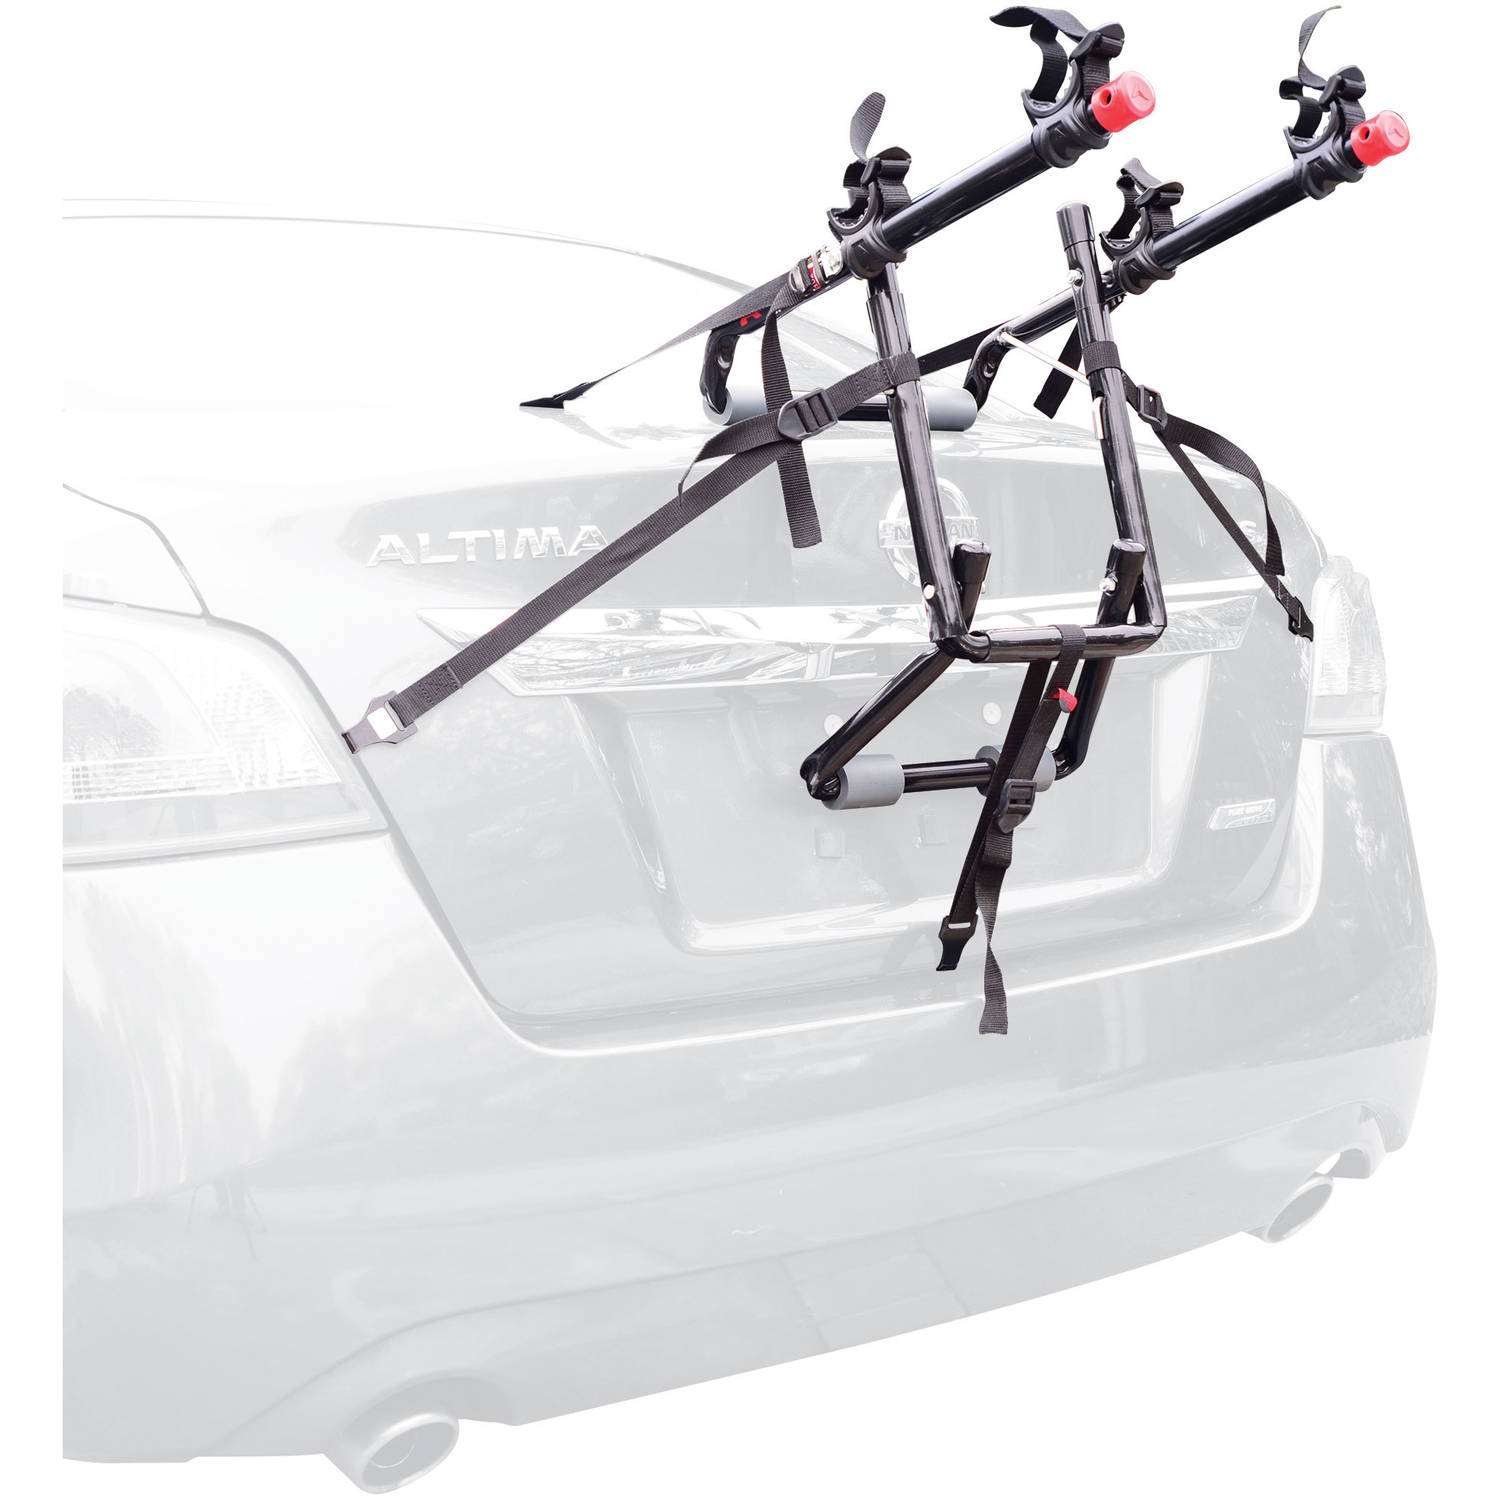 DELUXE 2-BIKE RACK by THE R A ALLEN COMPANY INC